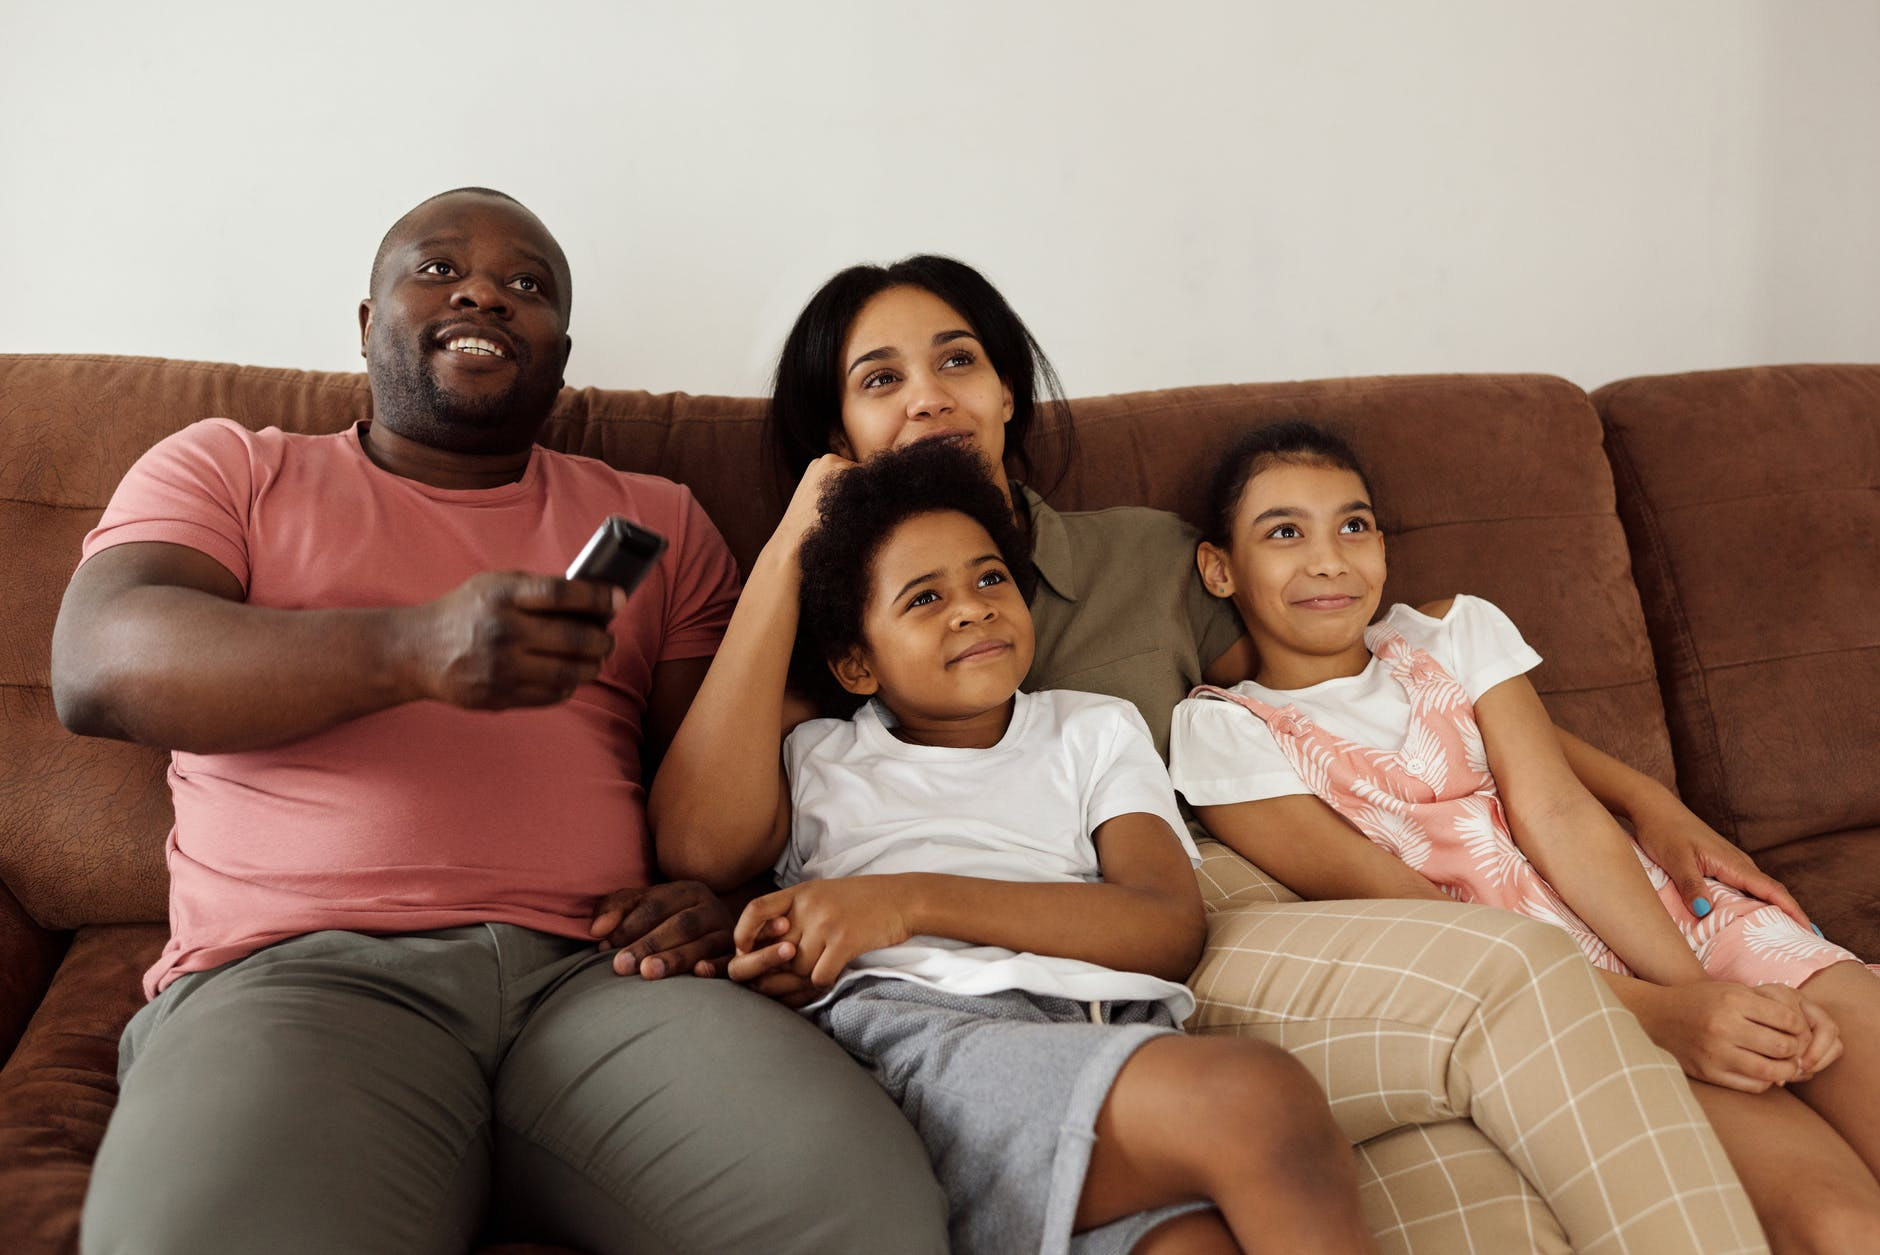 A family all sitting on a sofa watching the TV, with the dad holding the TV remote